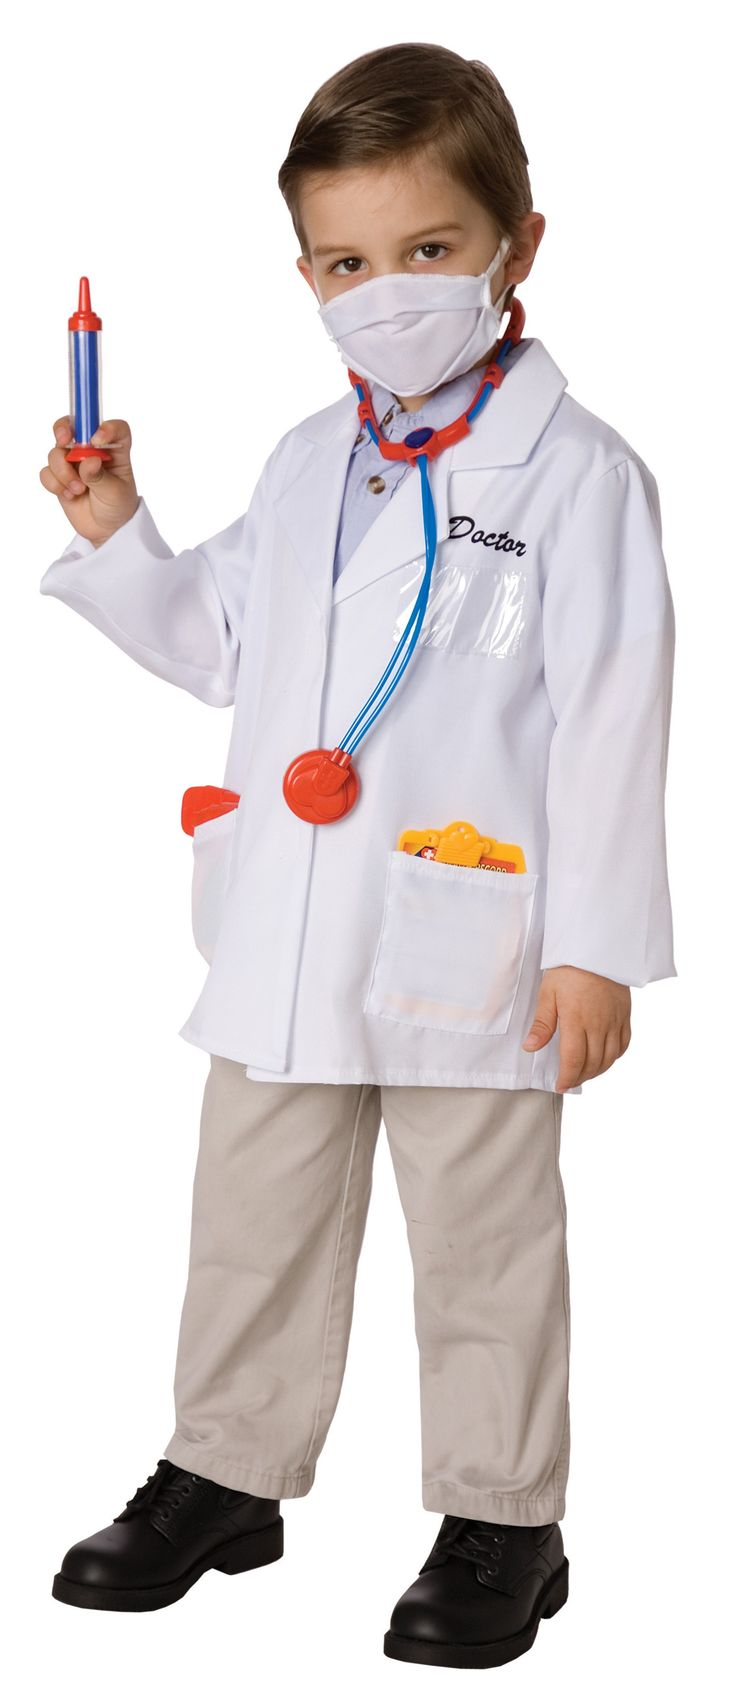 23 Best Doctor Amp Nurse Costumes Images On Pinterest